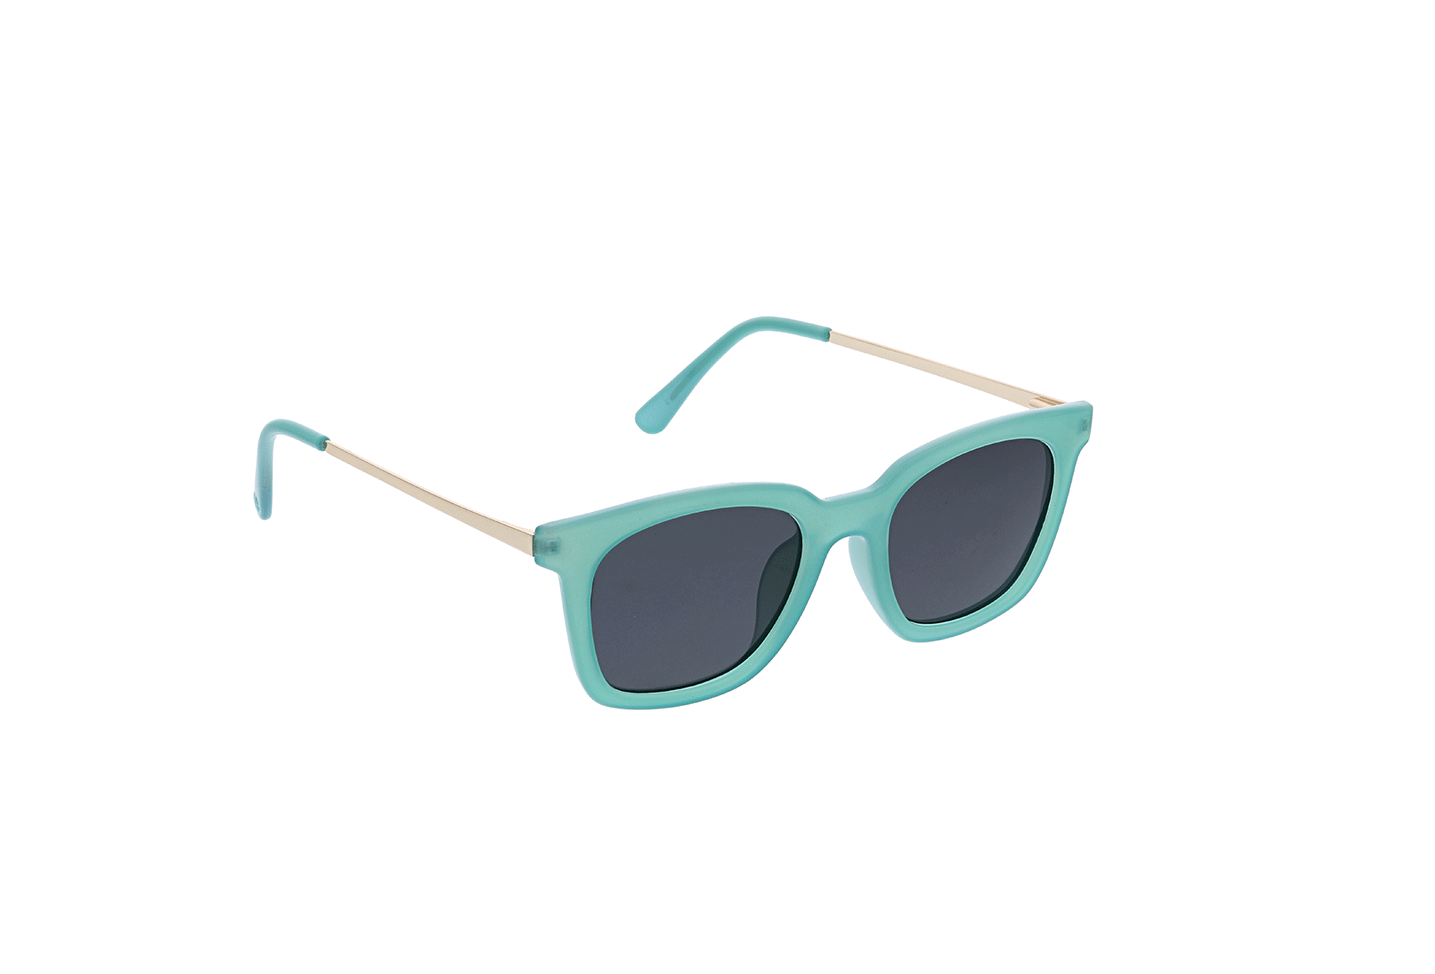 Endless Summer Polarized Sunglasses in Turquoise/Gold